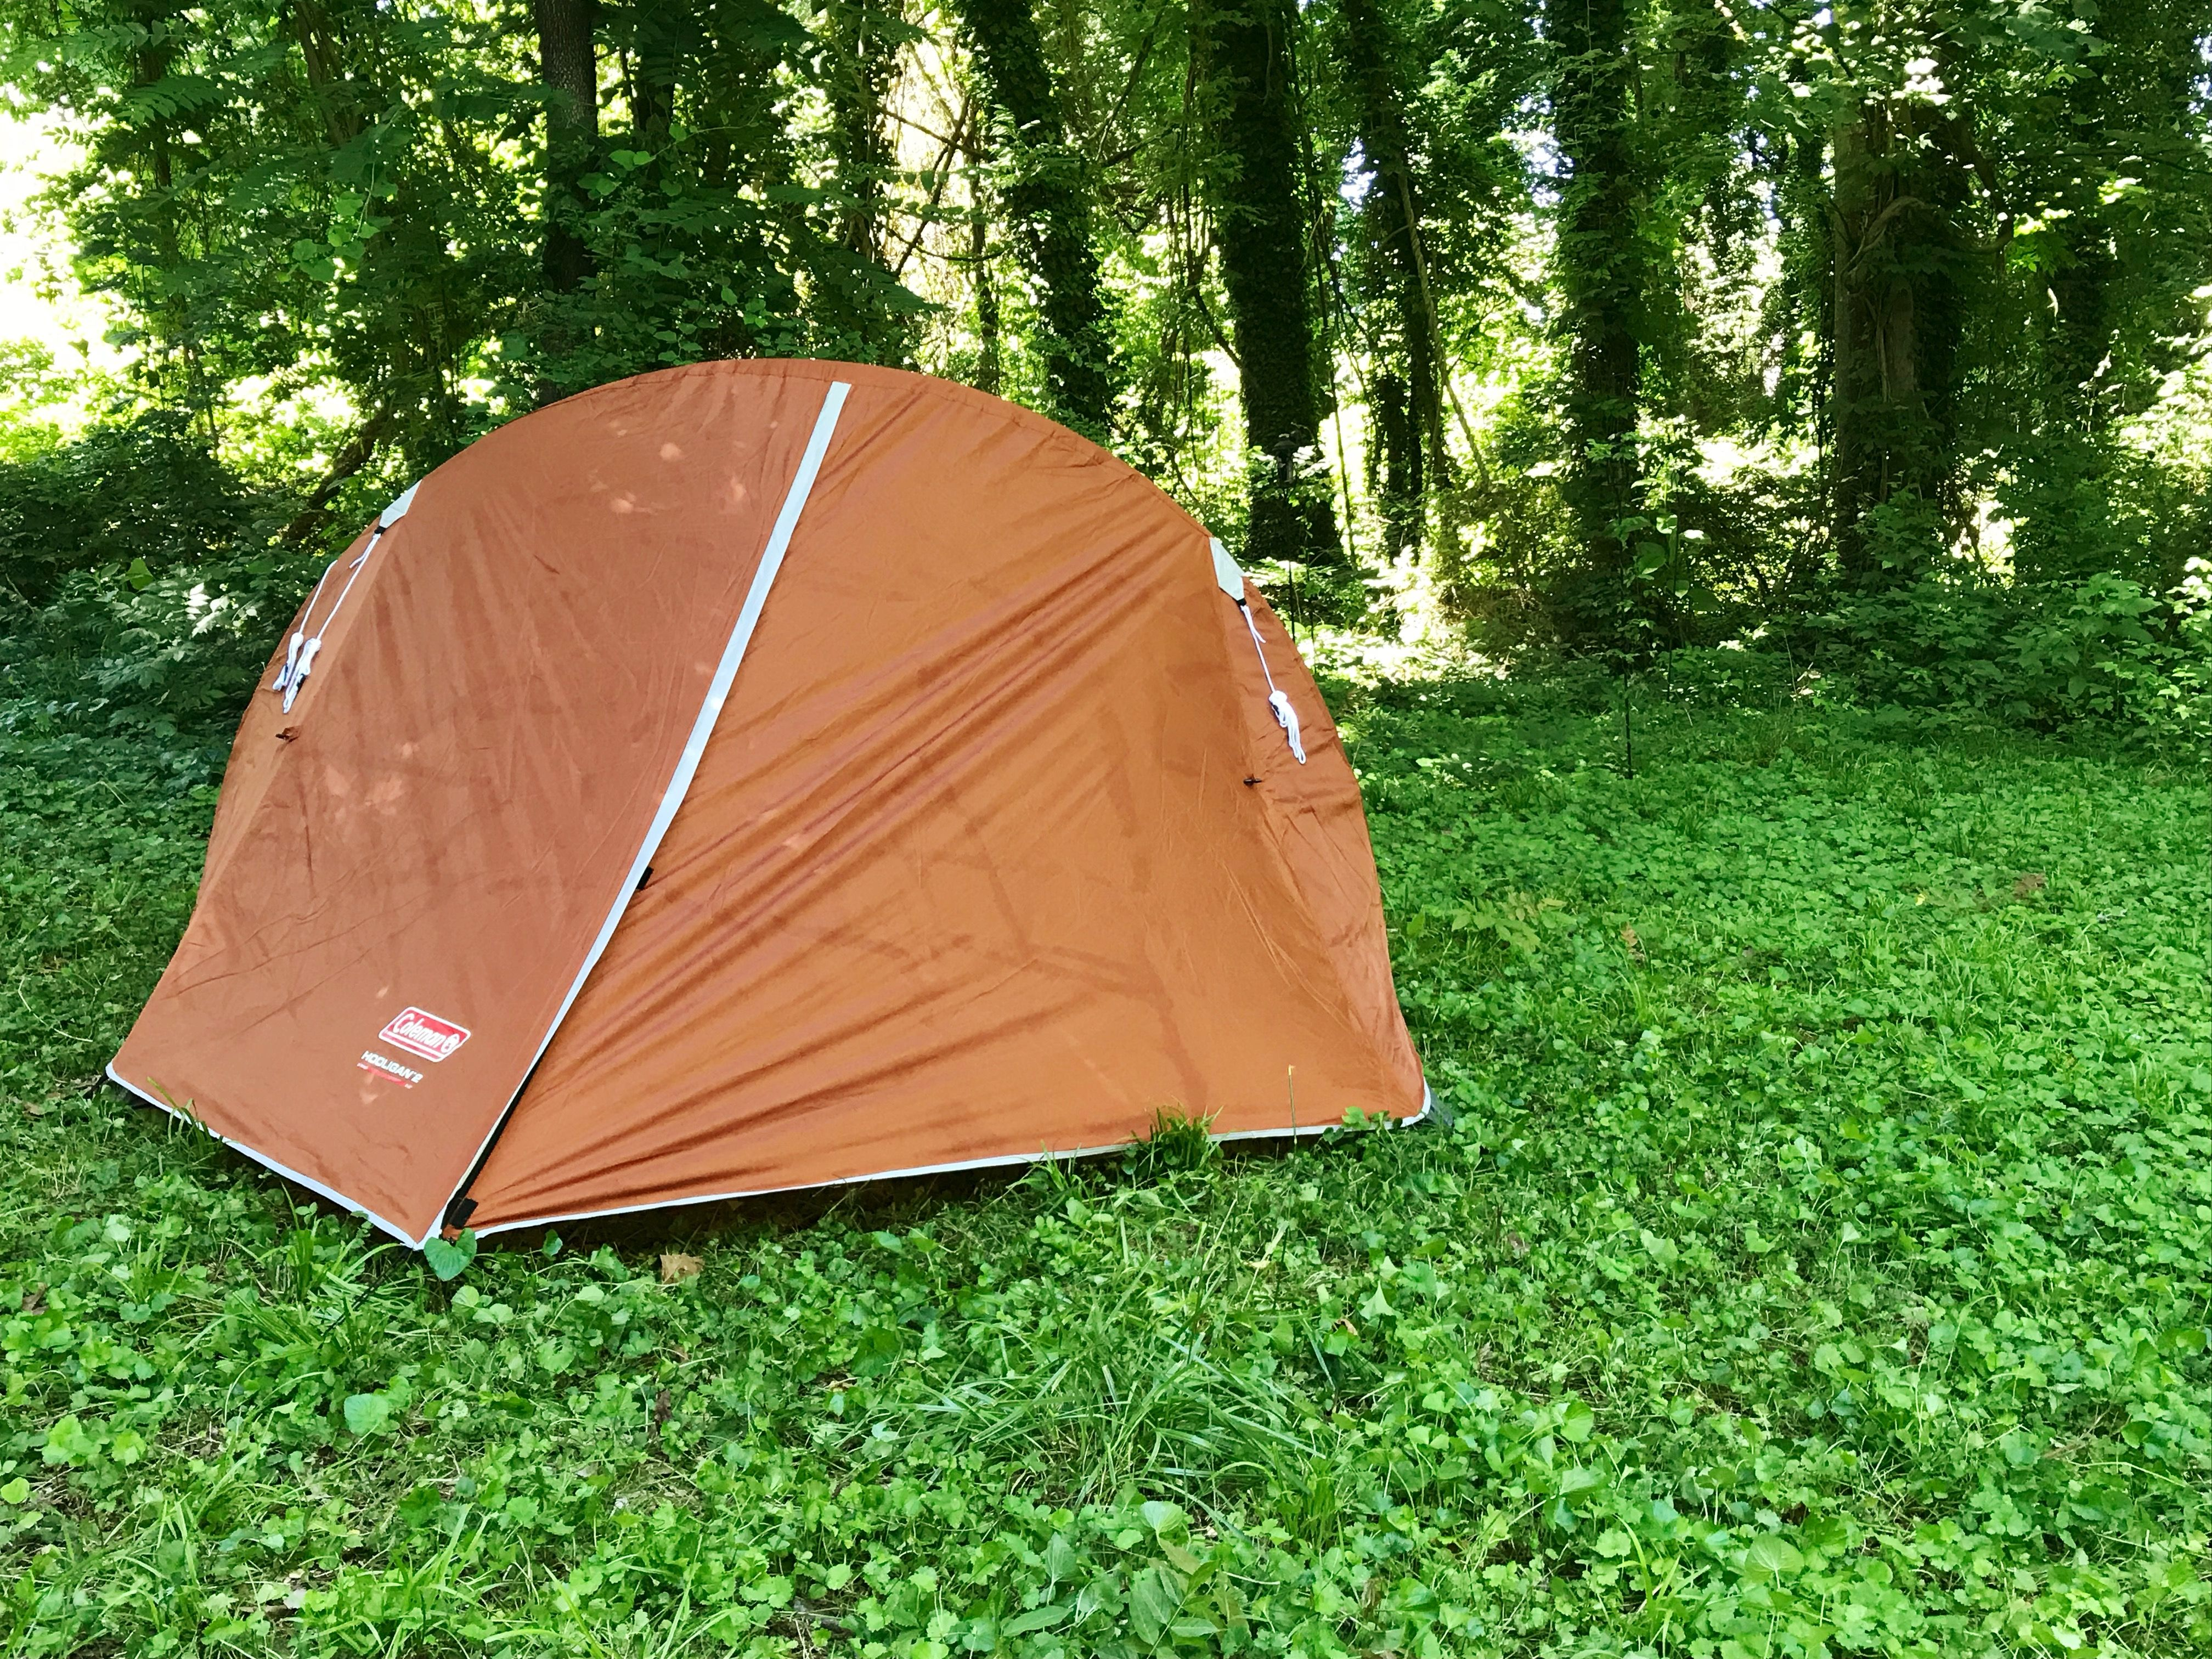 added to our rental fleet! | camping gear | pinterest | camping gear